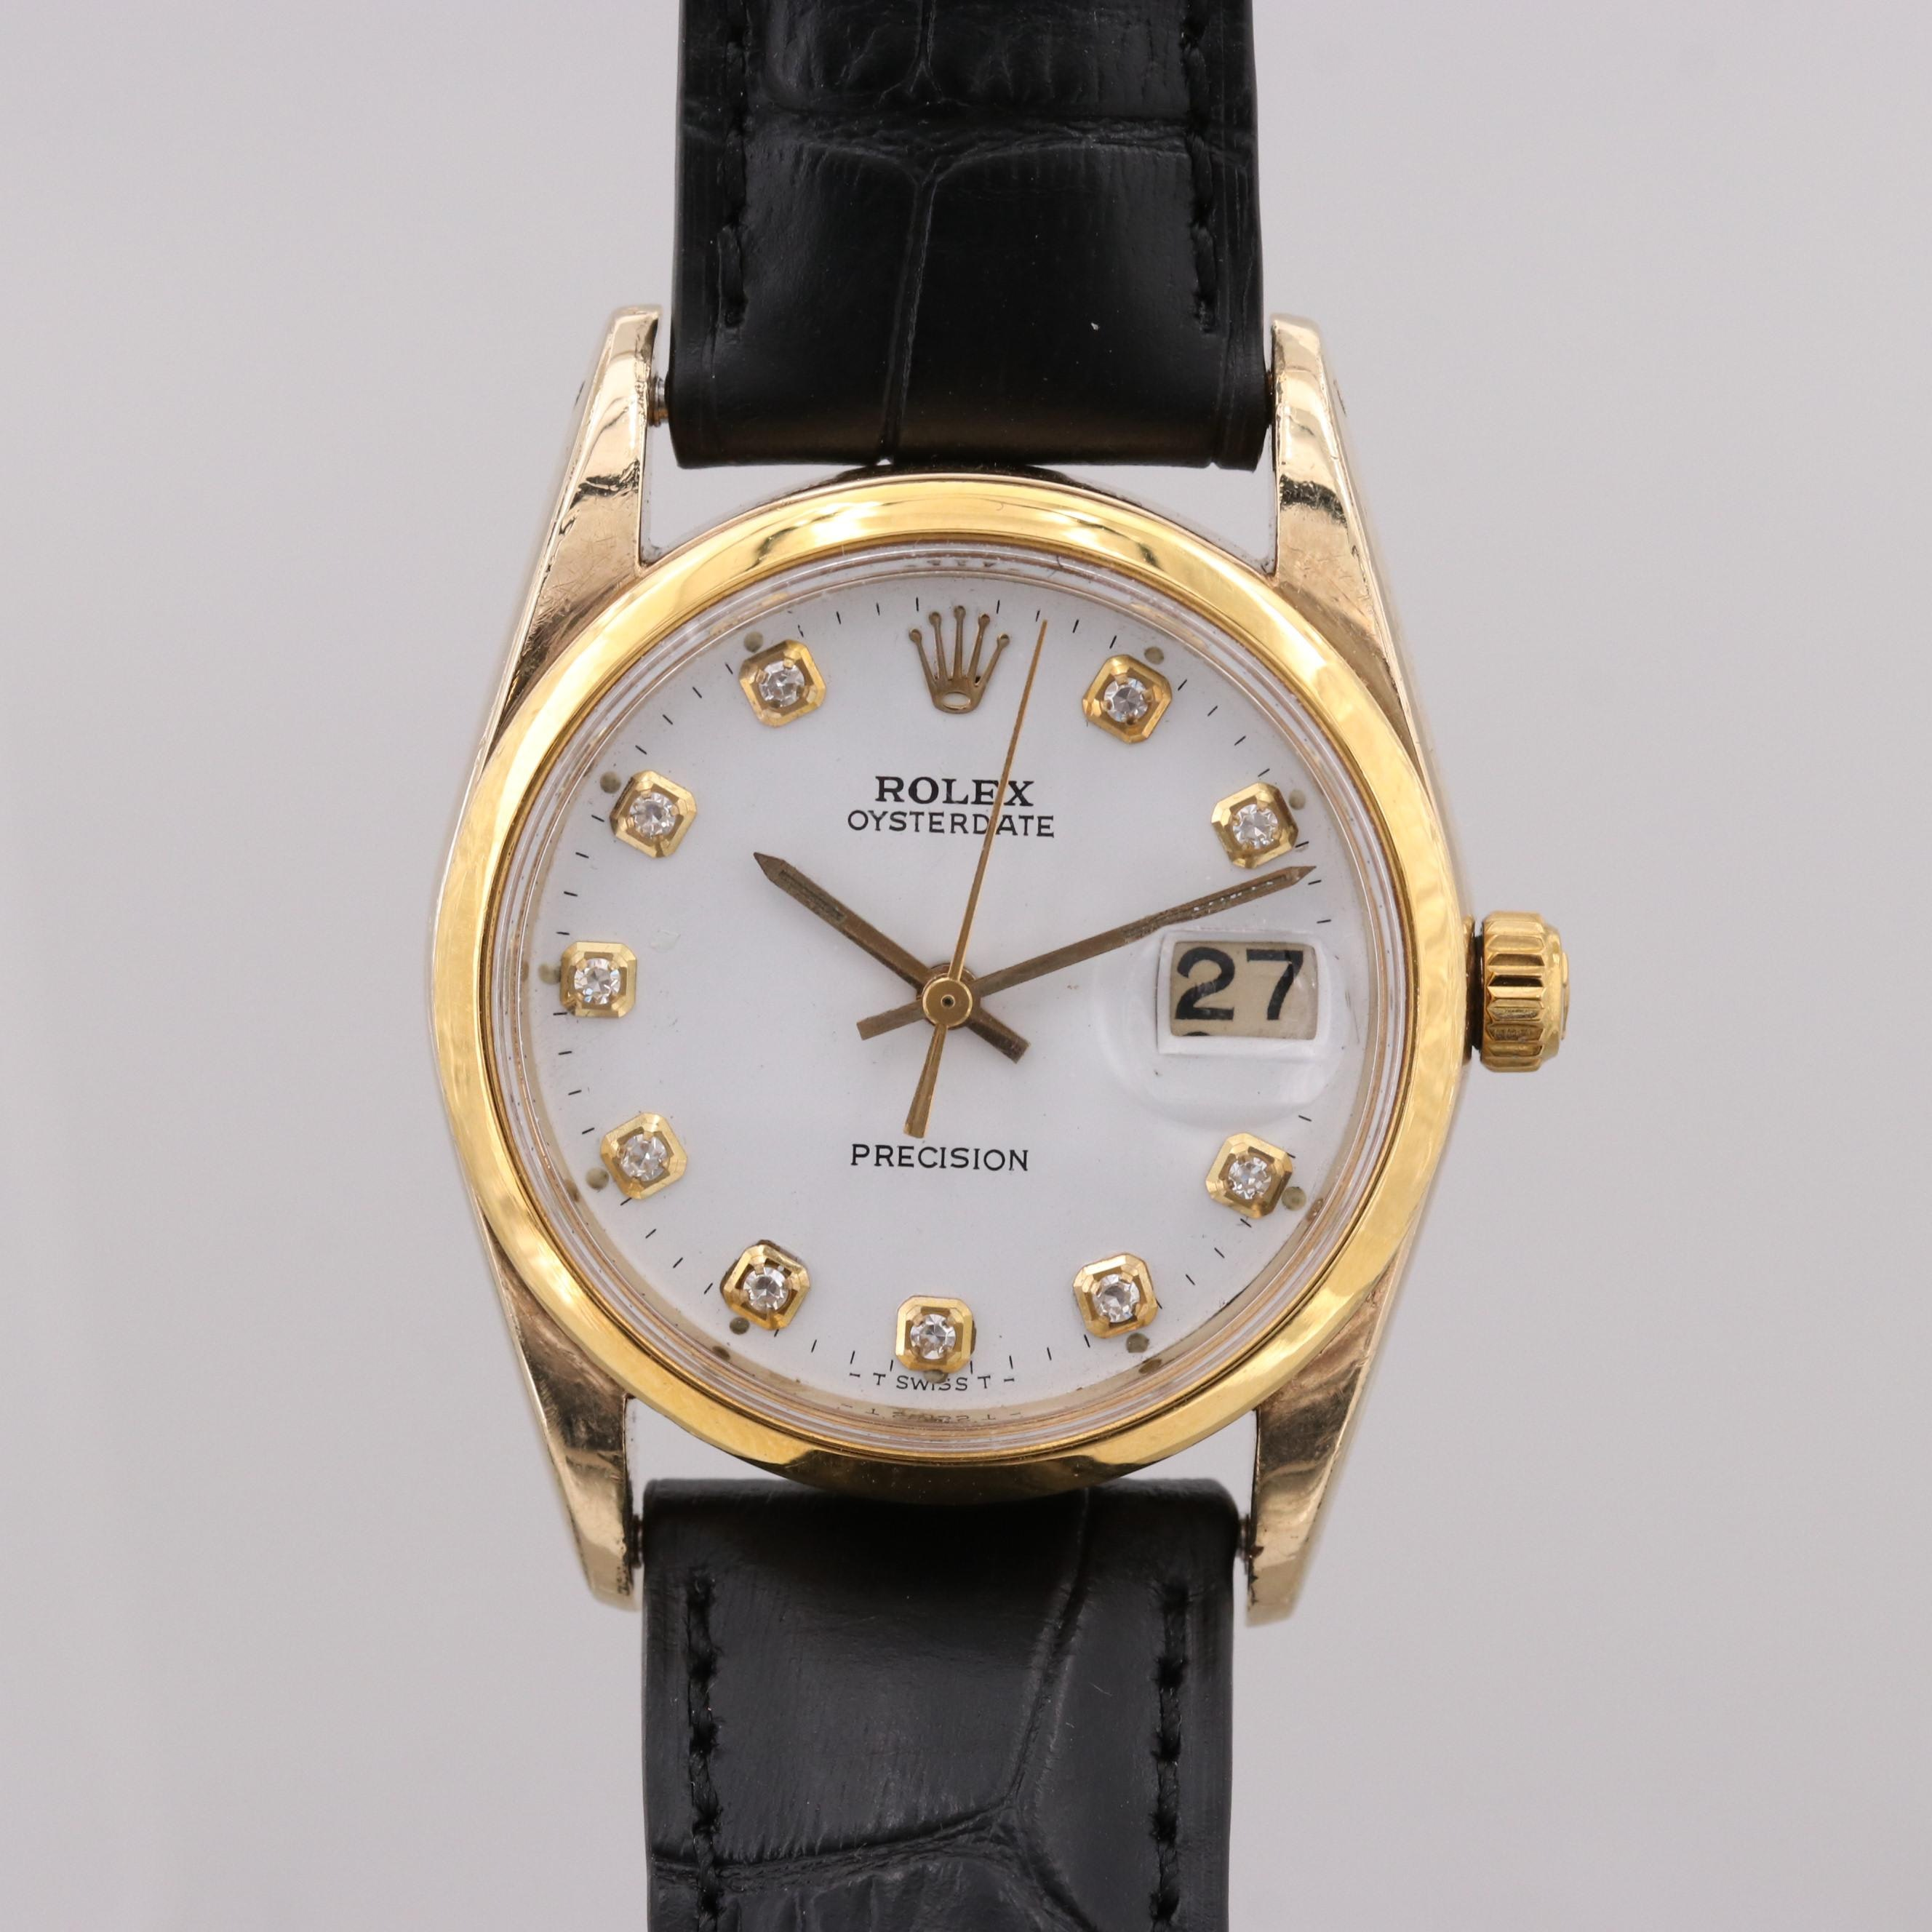 Rolex Oyster Date Stainless Steel and Gold Plate Wristwatch With Diamonds, 1964